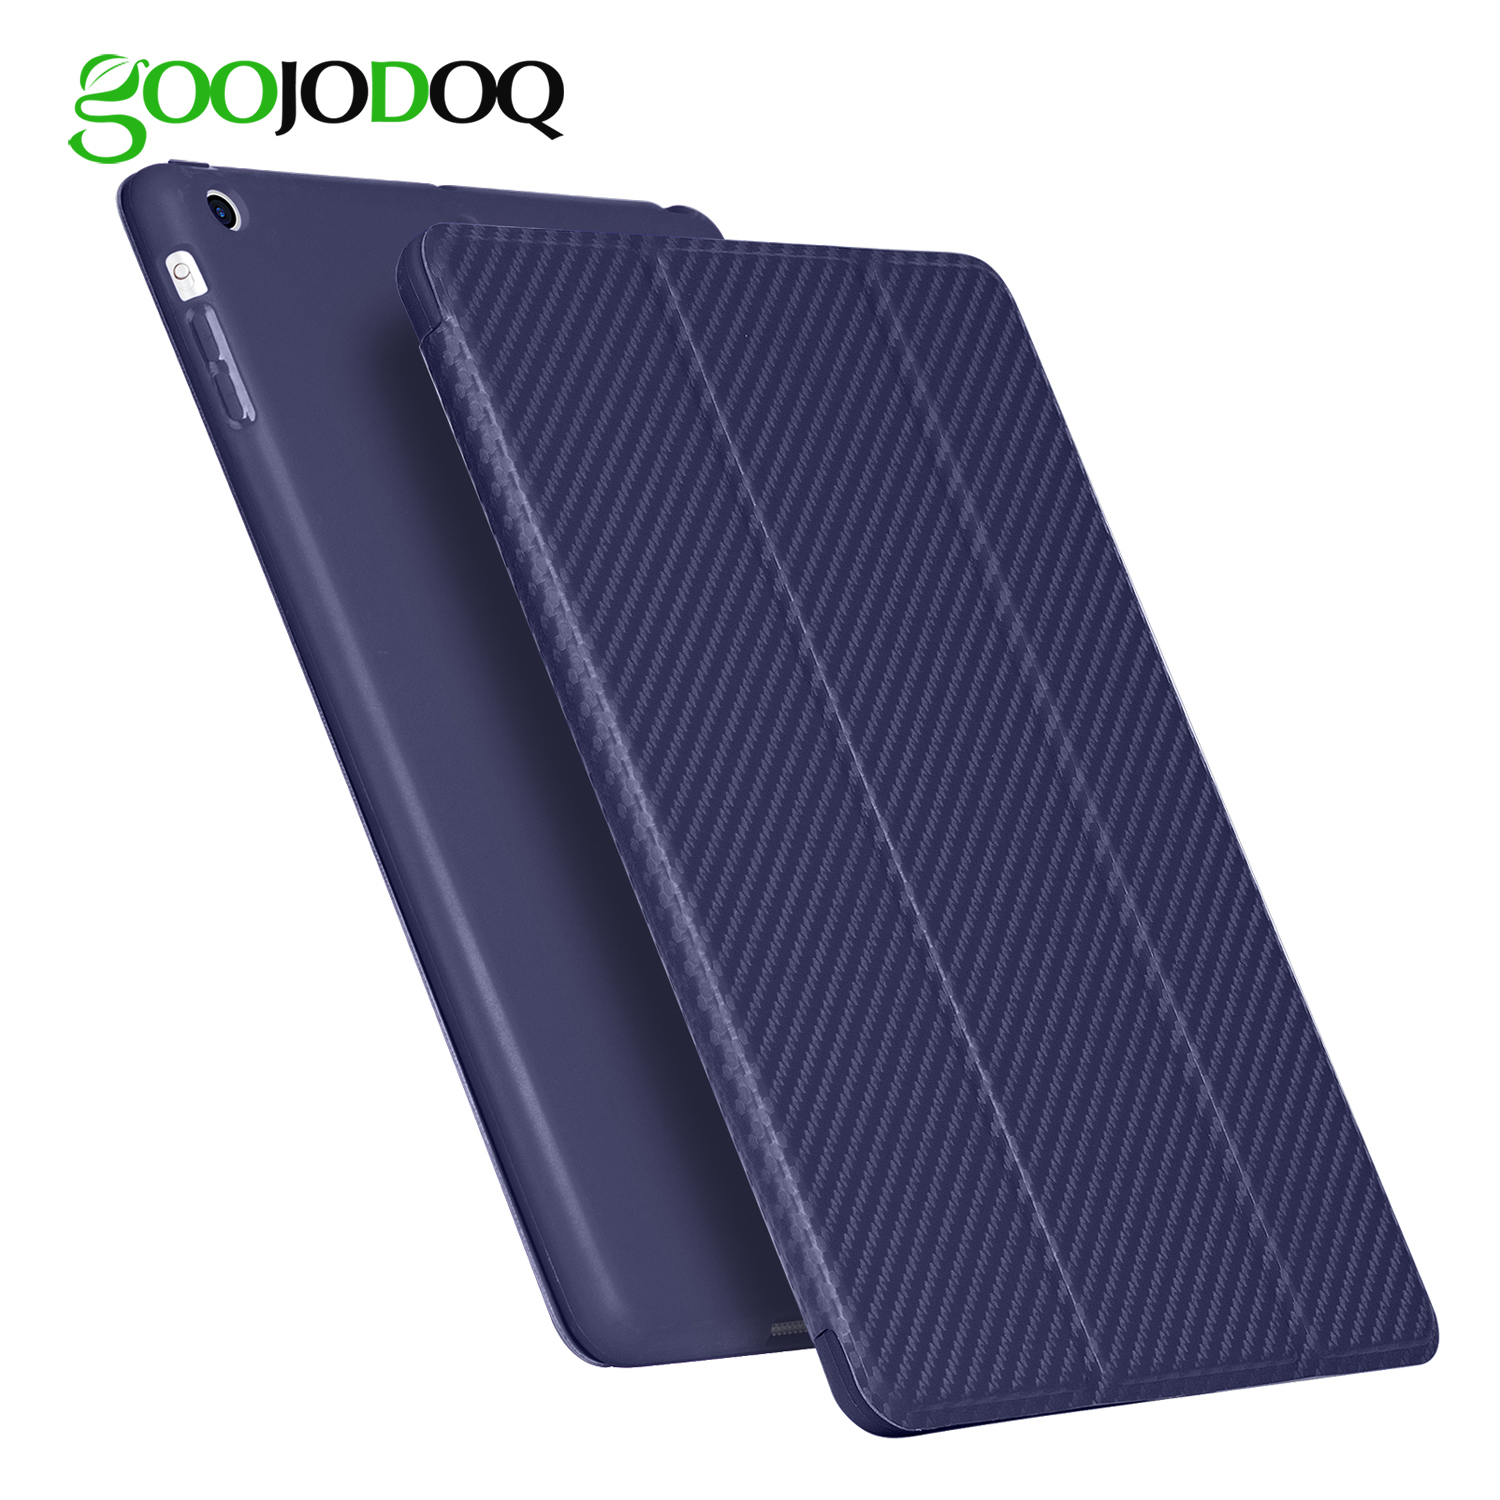 Case para ipad air 2, goojodoq silicone case de volta para apple ipad air 2 ipad 6 couro pu capa inteligente a1566 a1567 auto sono / wake